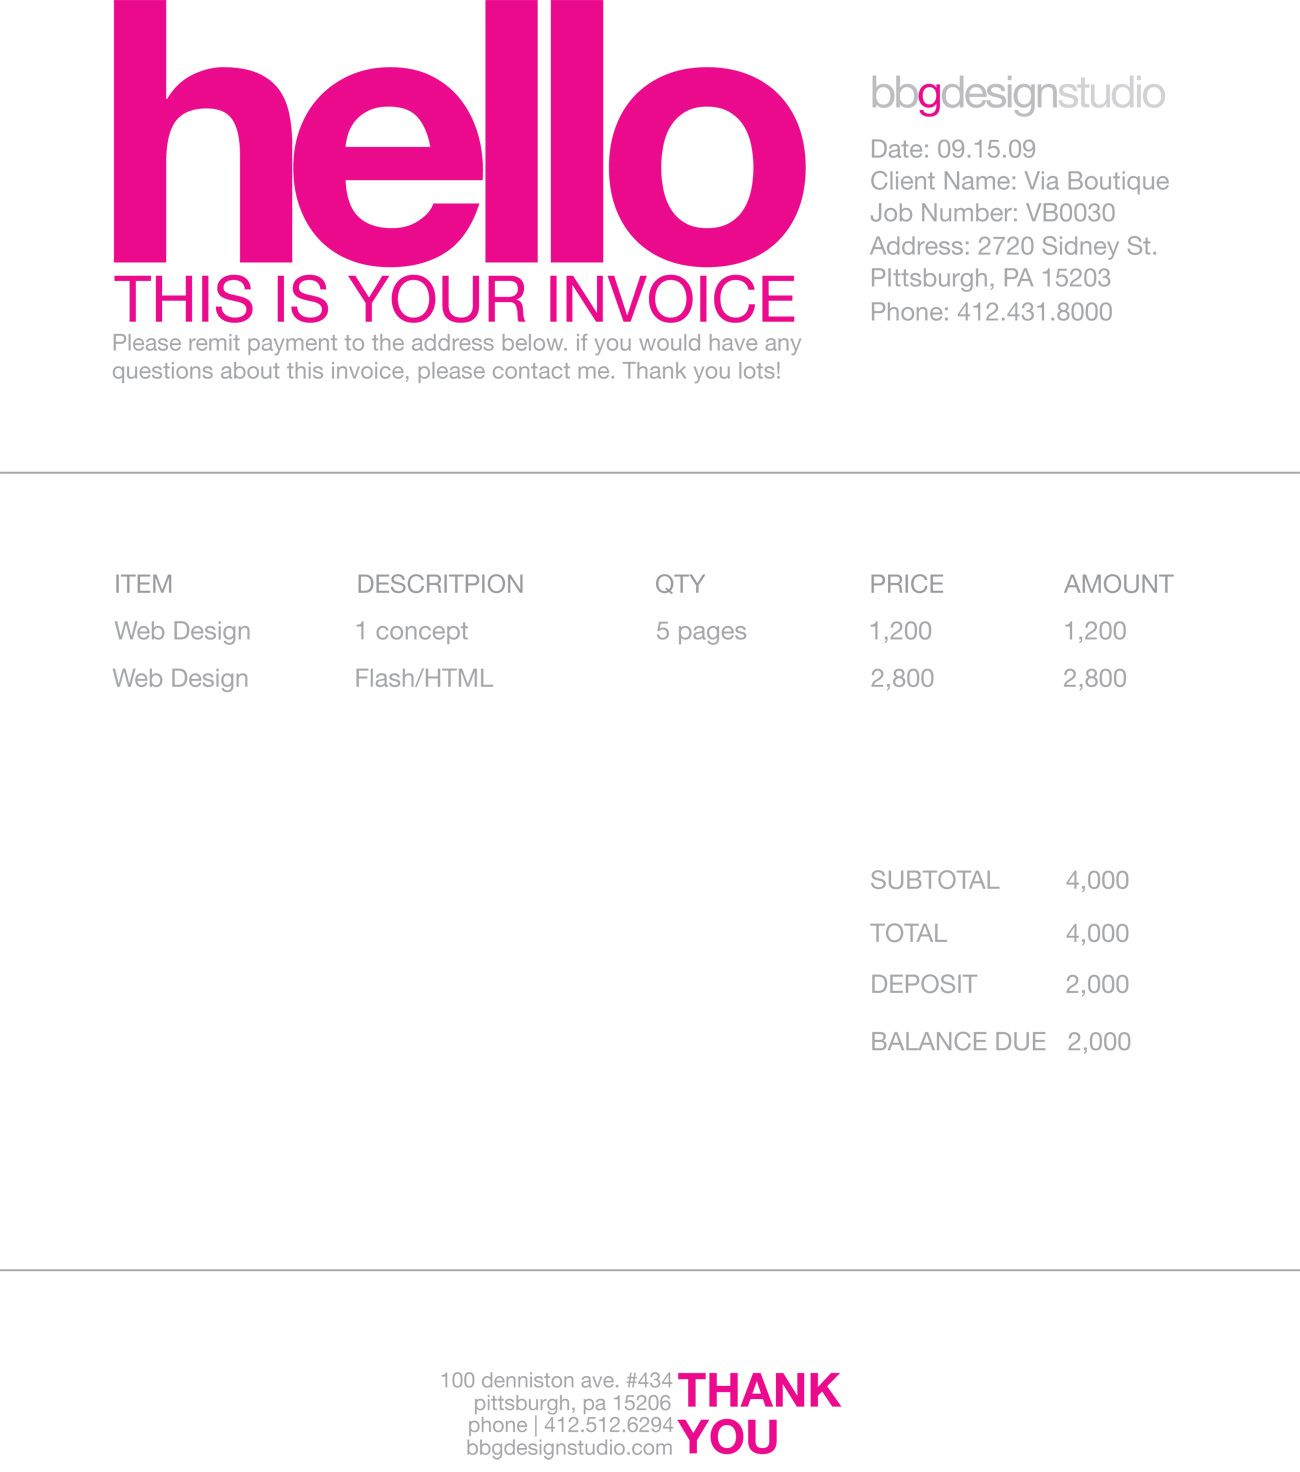 Ebitus  Stunning  Images About Invoice Design On Pinterest With Lovable Best Buy Exchange Without Receipt Besides Service Receipt Template Furthermore Texas Gross Receipts With Awesome Check Receipt Also Itemized Receipt Template In Addition Mo Personal Property Tax Receipt And Read Receipts Outlook As Well As Local Business Tax Receipt Additionally Virtually There E Ticket Receipt From Pinterestcom With Ebitus  Lovable  Images About Invoice Design On Pinterest With Awesome Best Buy Exchange Without Receipt Besides Service Receipt Template Furthermore Texas Gross Receipts And Stunning Check Receipt Also Itemized Receipt Template In Addition Mo Personal Property Tax Receipt From Pinterestcom